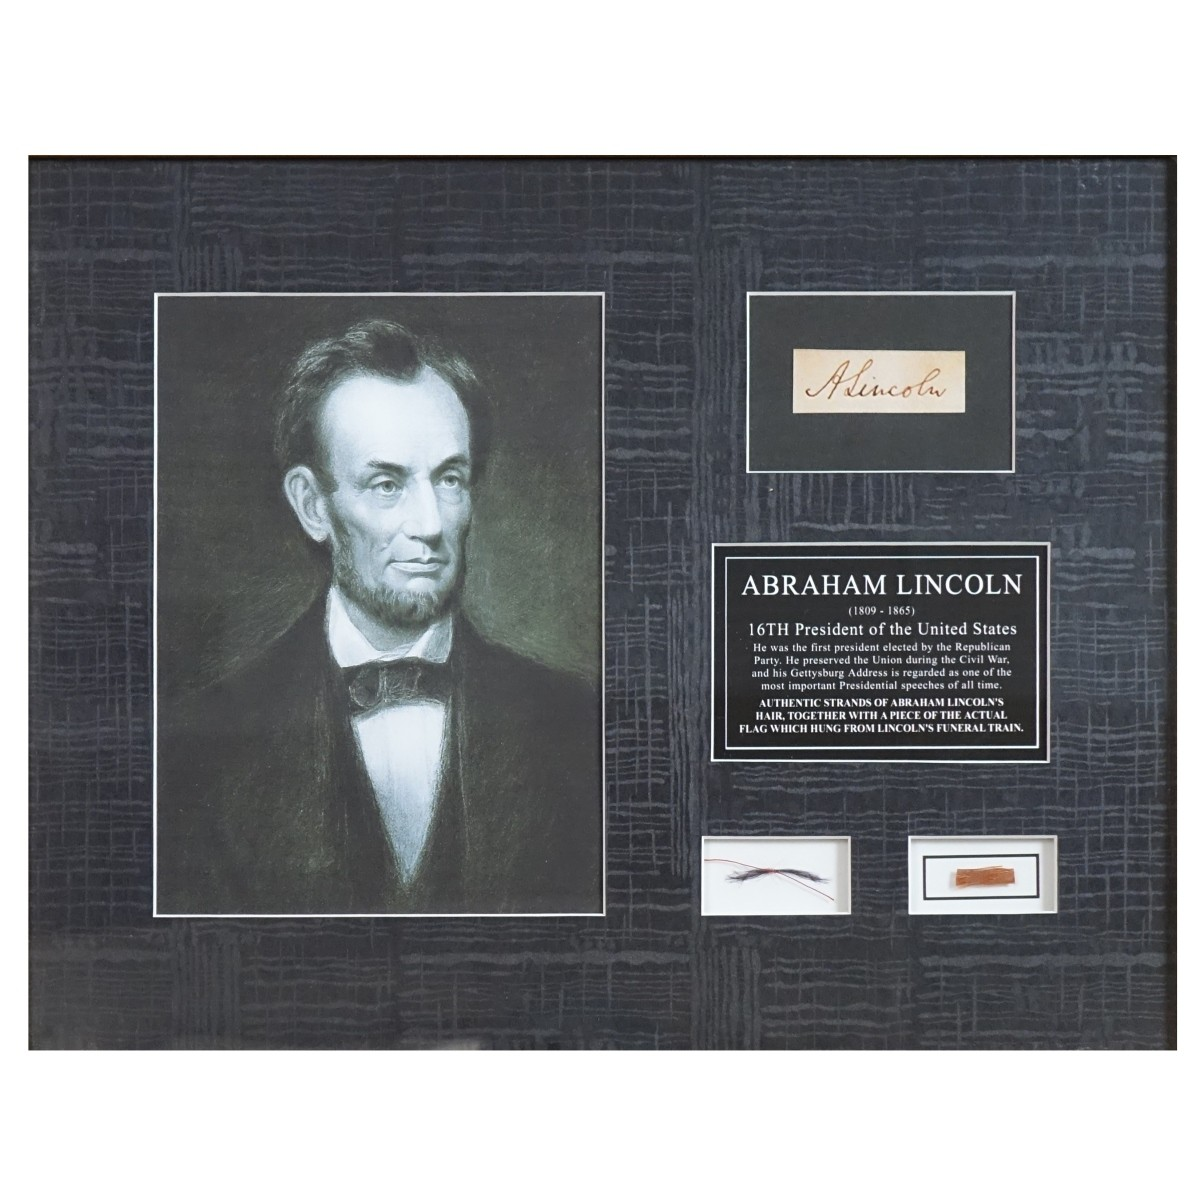 Abraham Lincoln (1809-1865) Artifacts